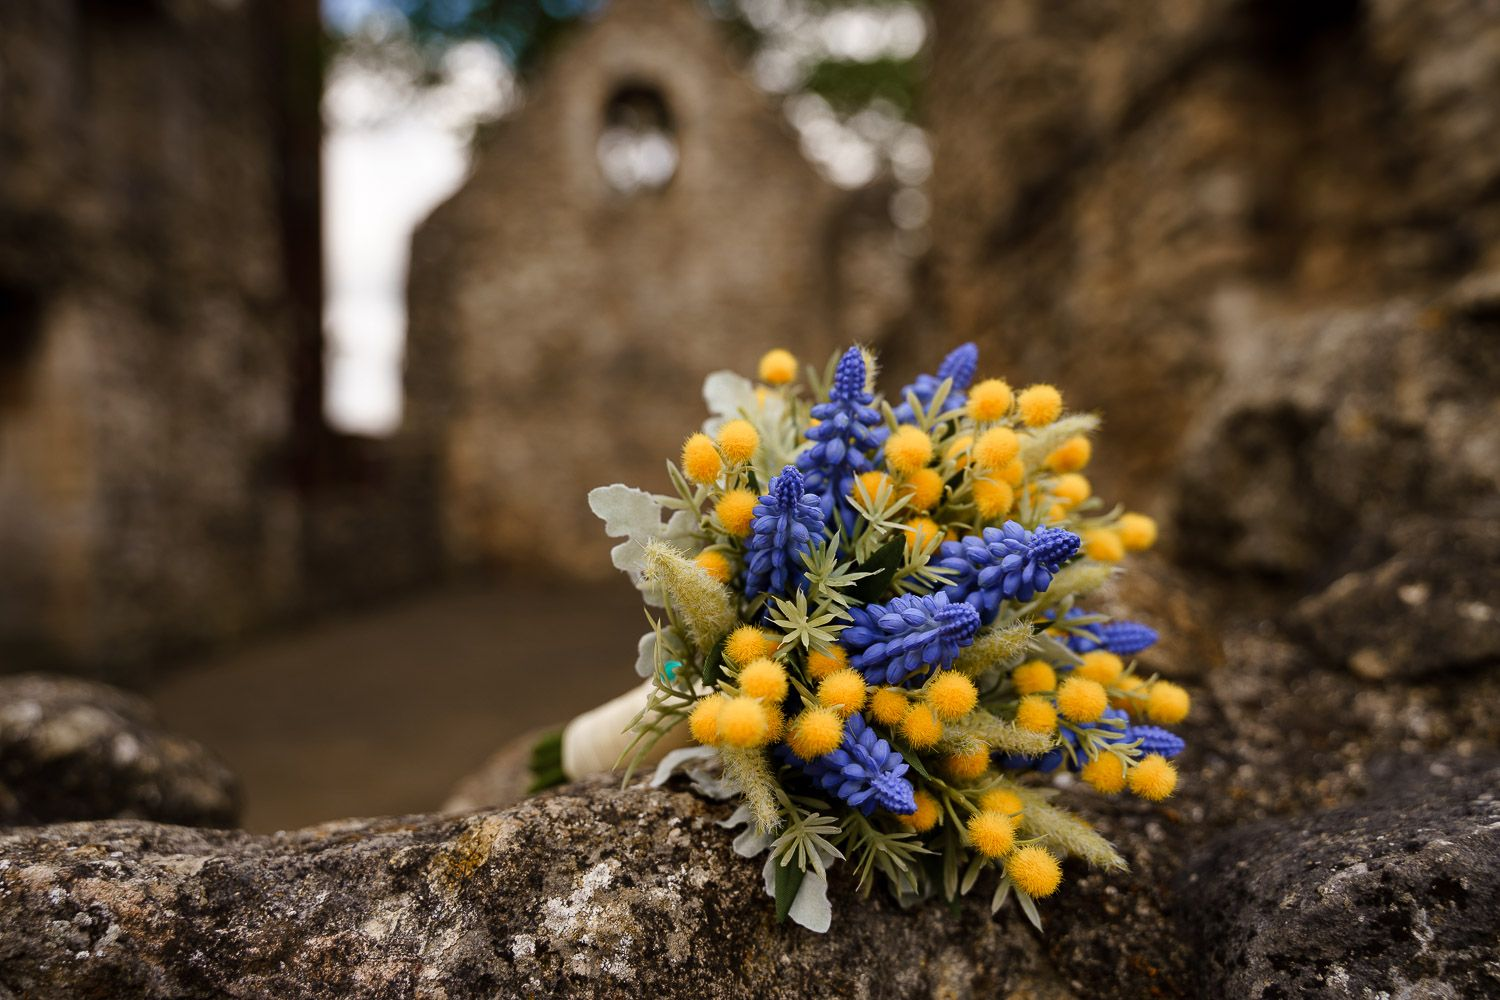 Blue and yellow bridal bouquet at Southampton Old Town wedding.